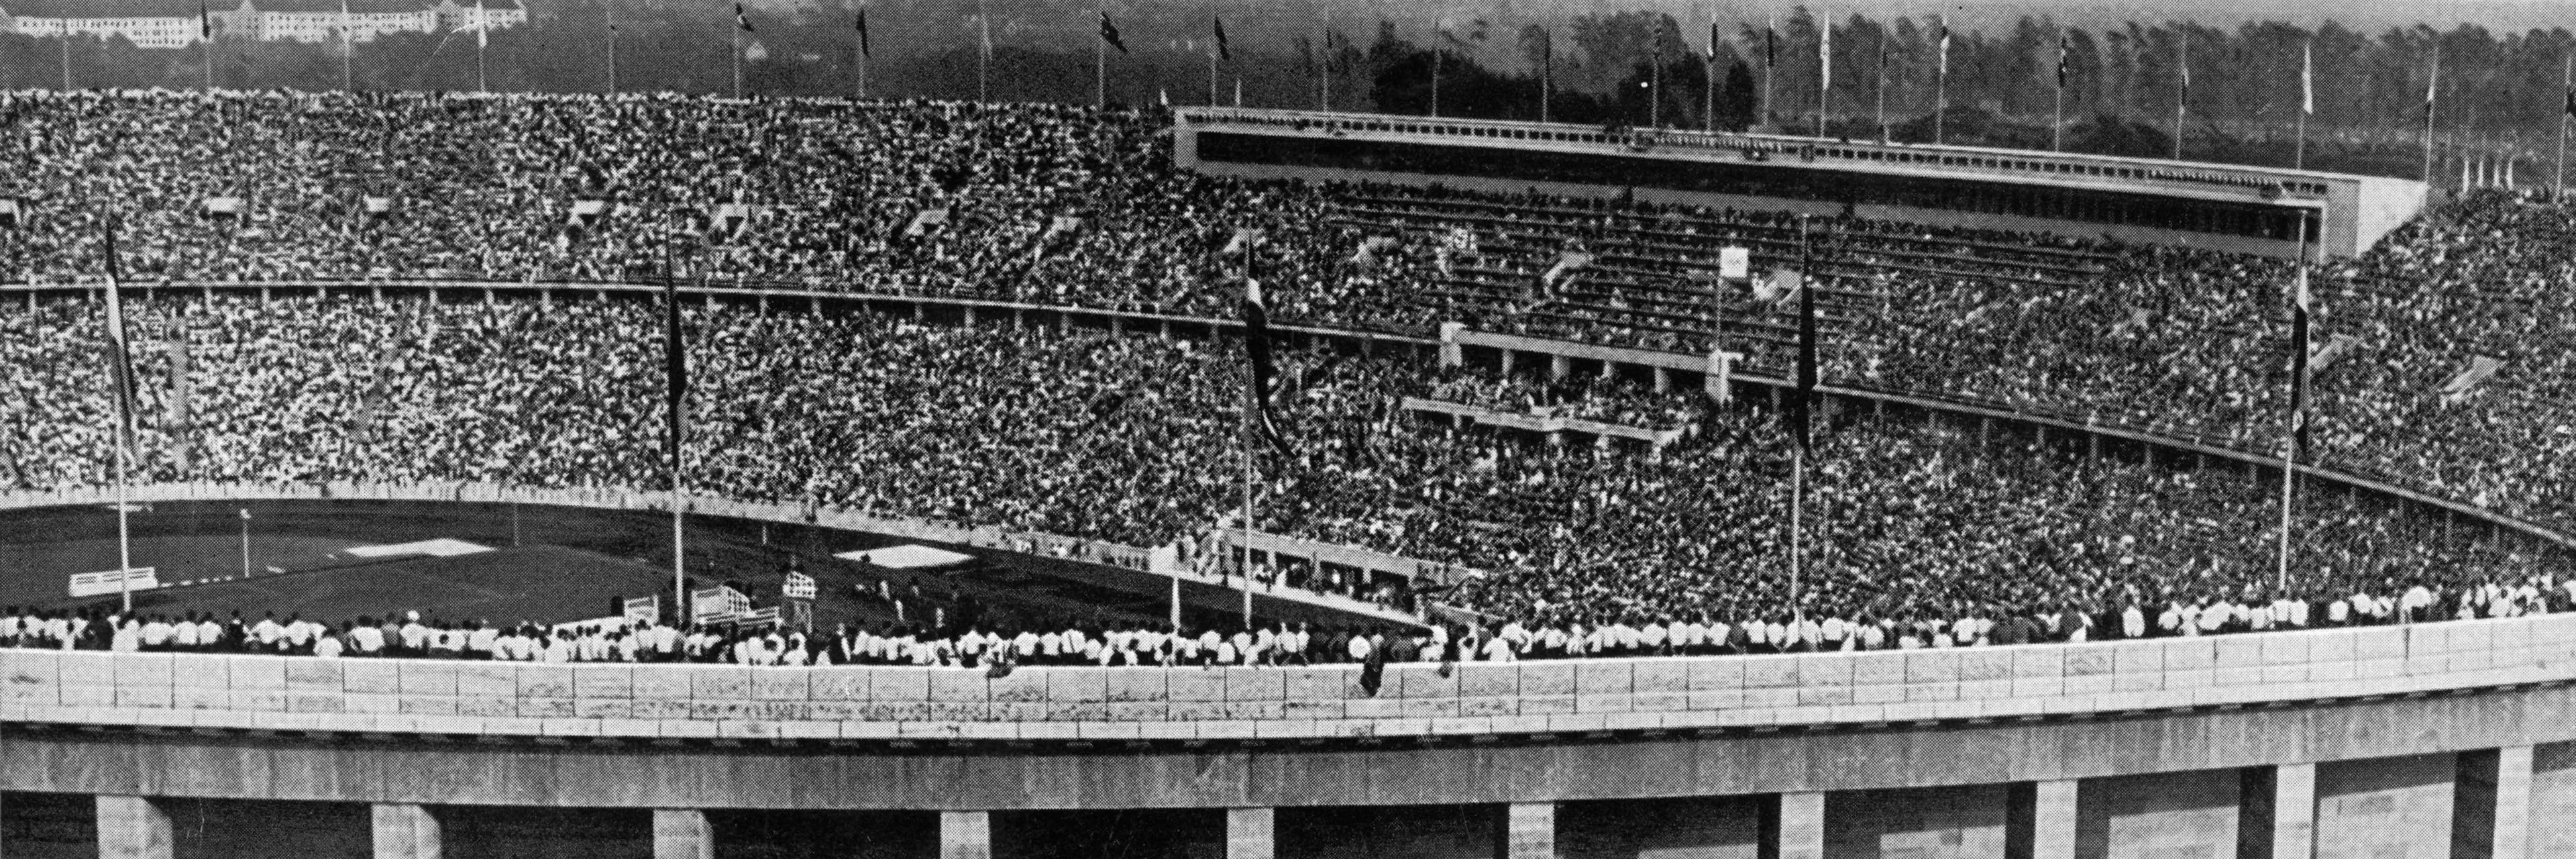 1936 Olympics - Berlin Summer Olympic Games